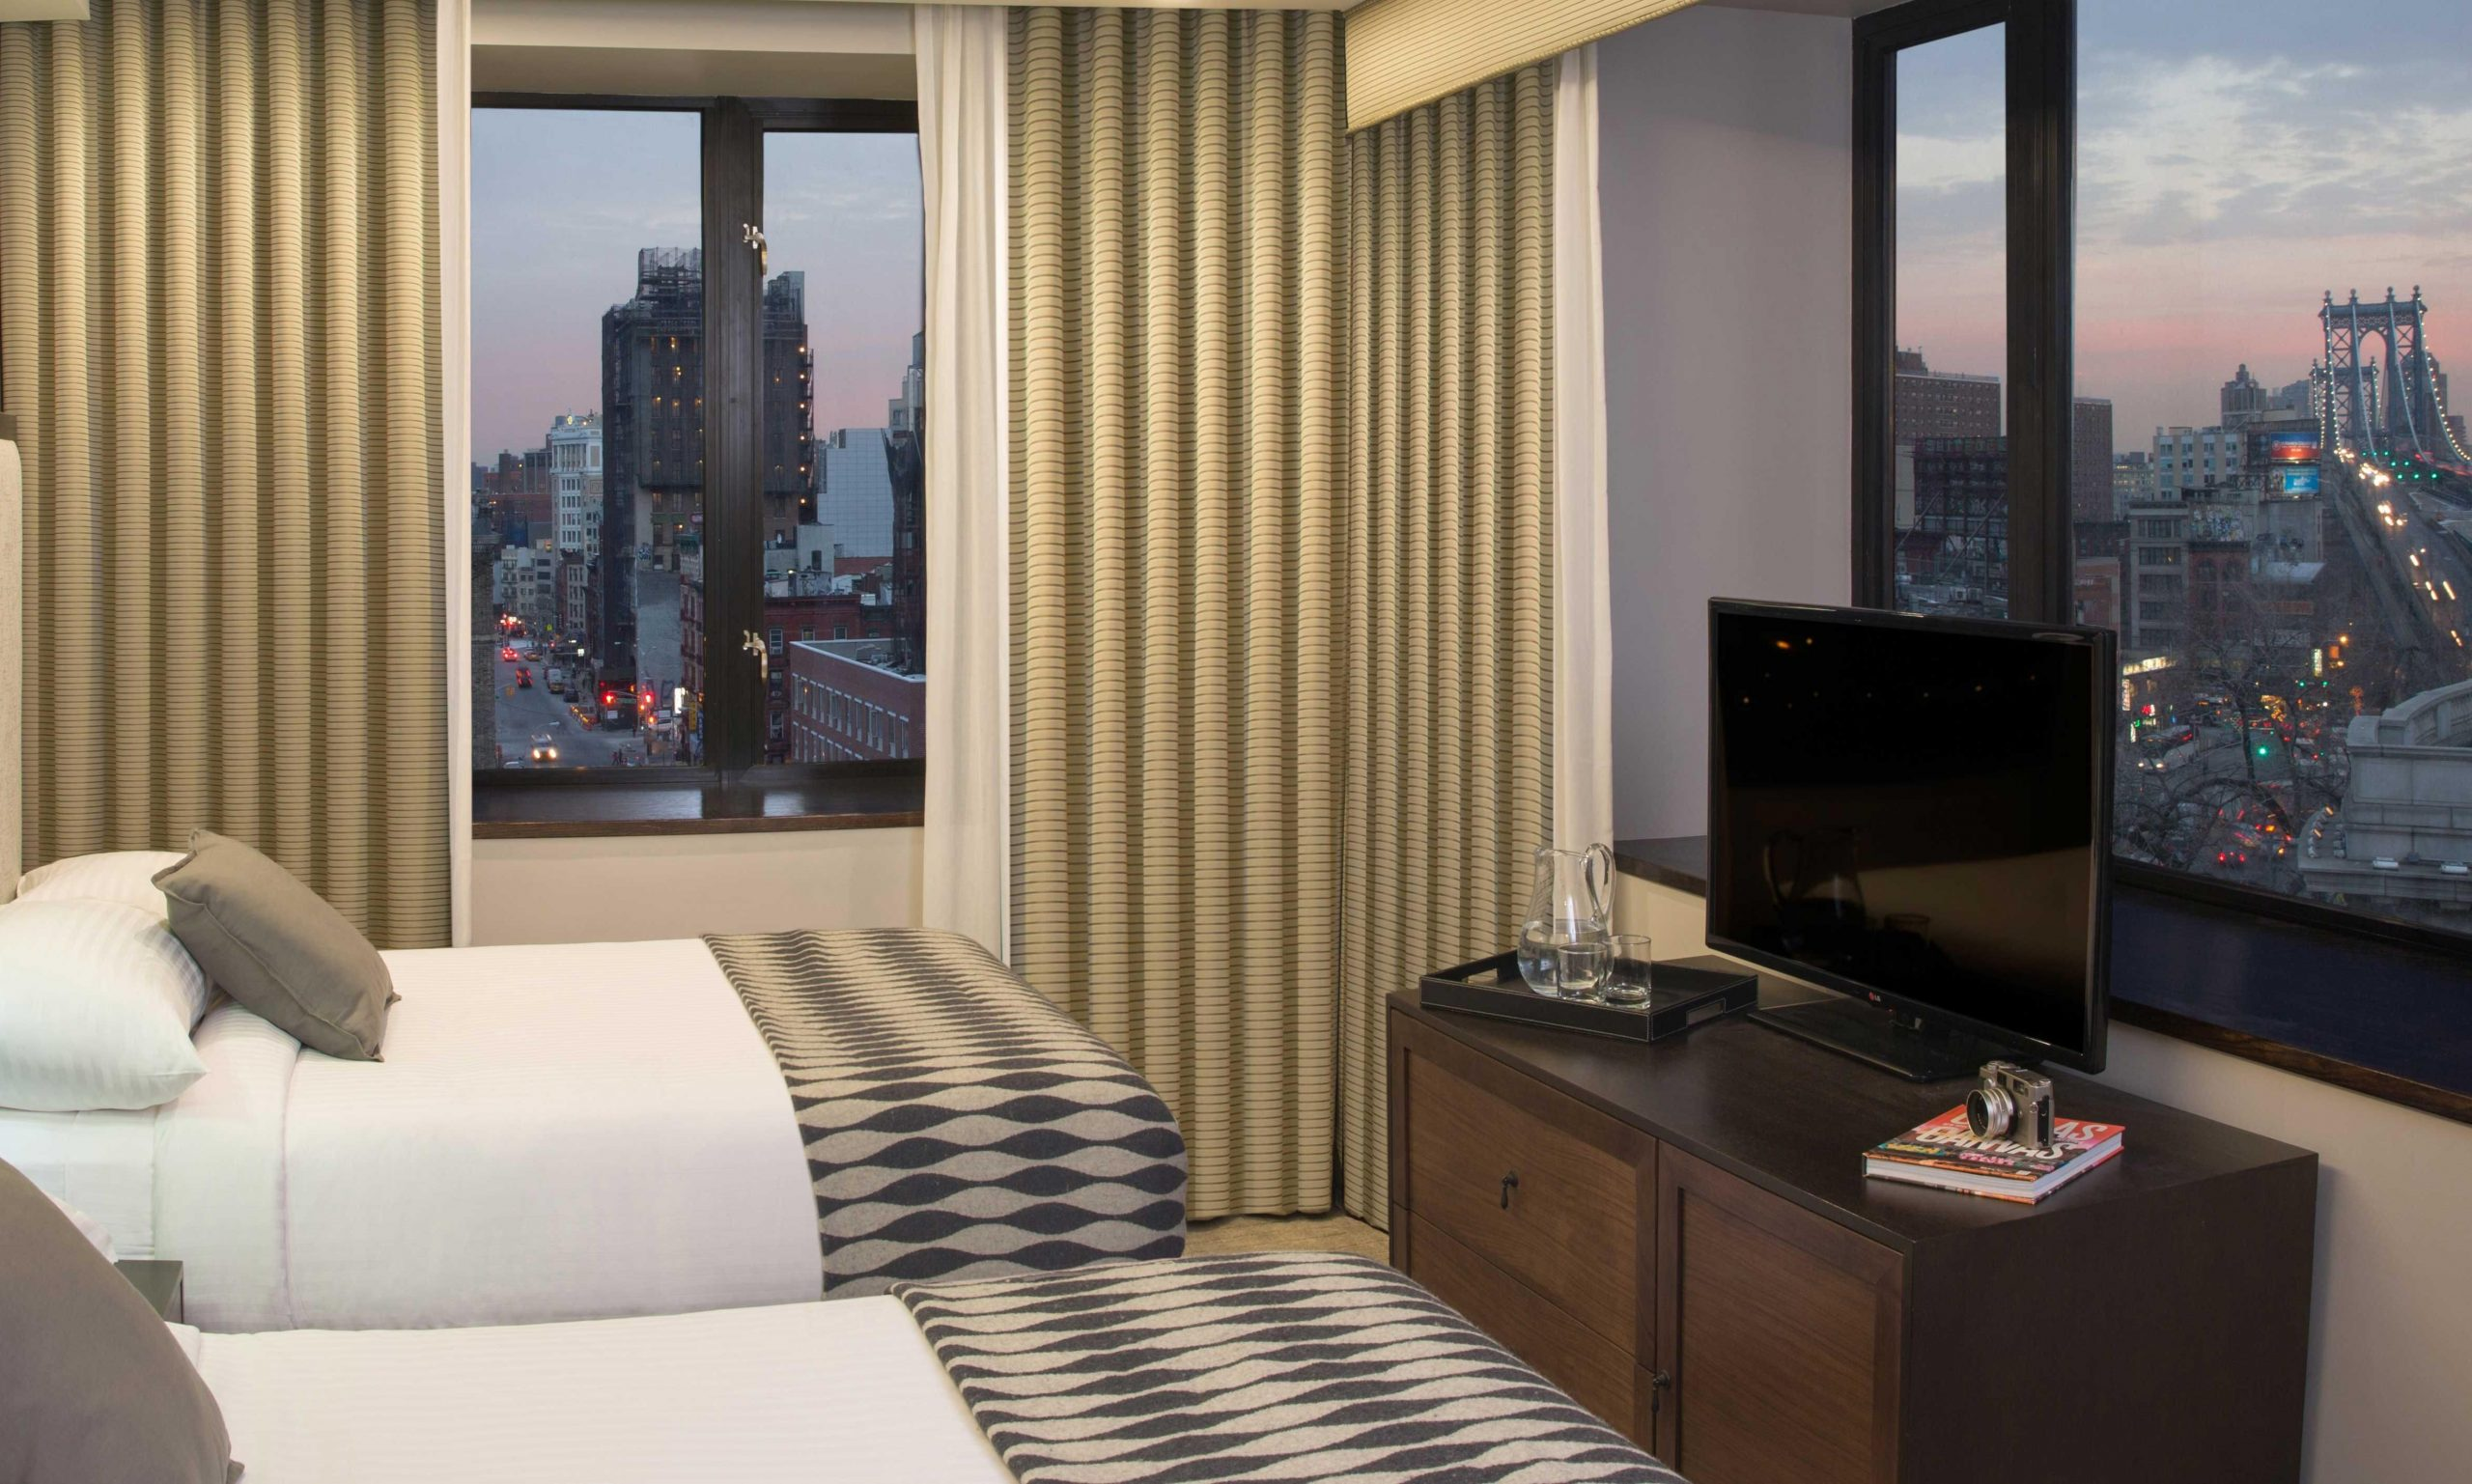 10 of the best new affordable hotels in New York City ...